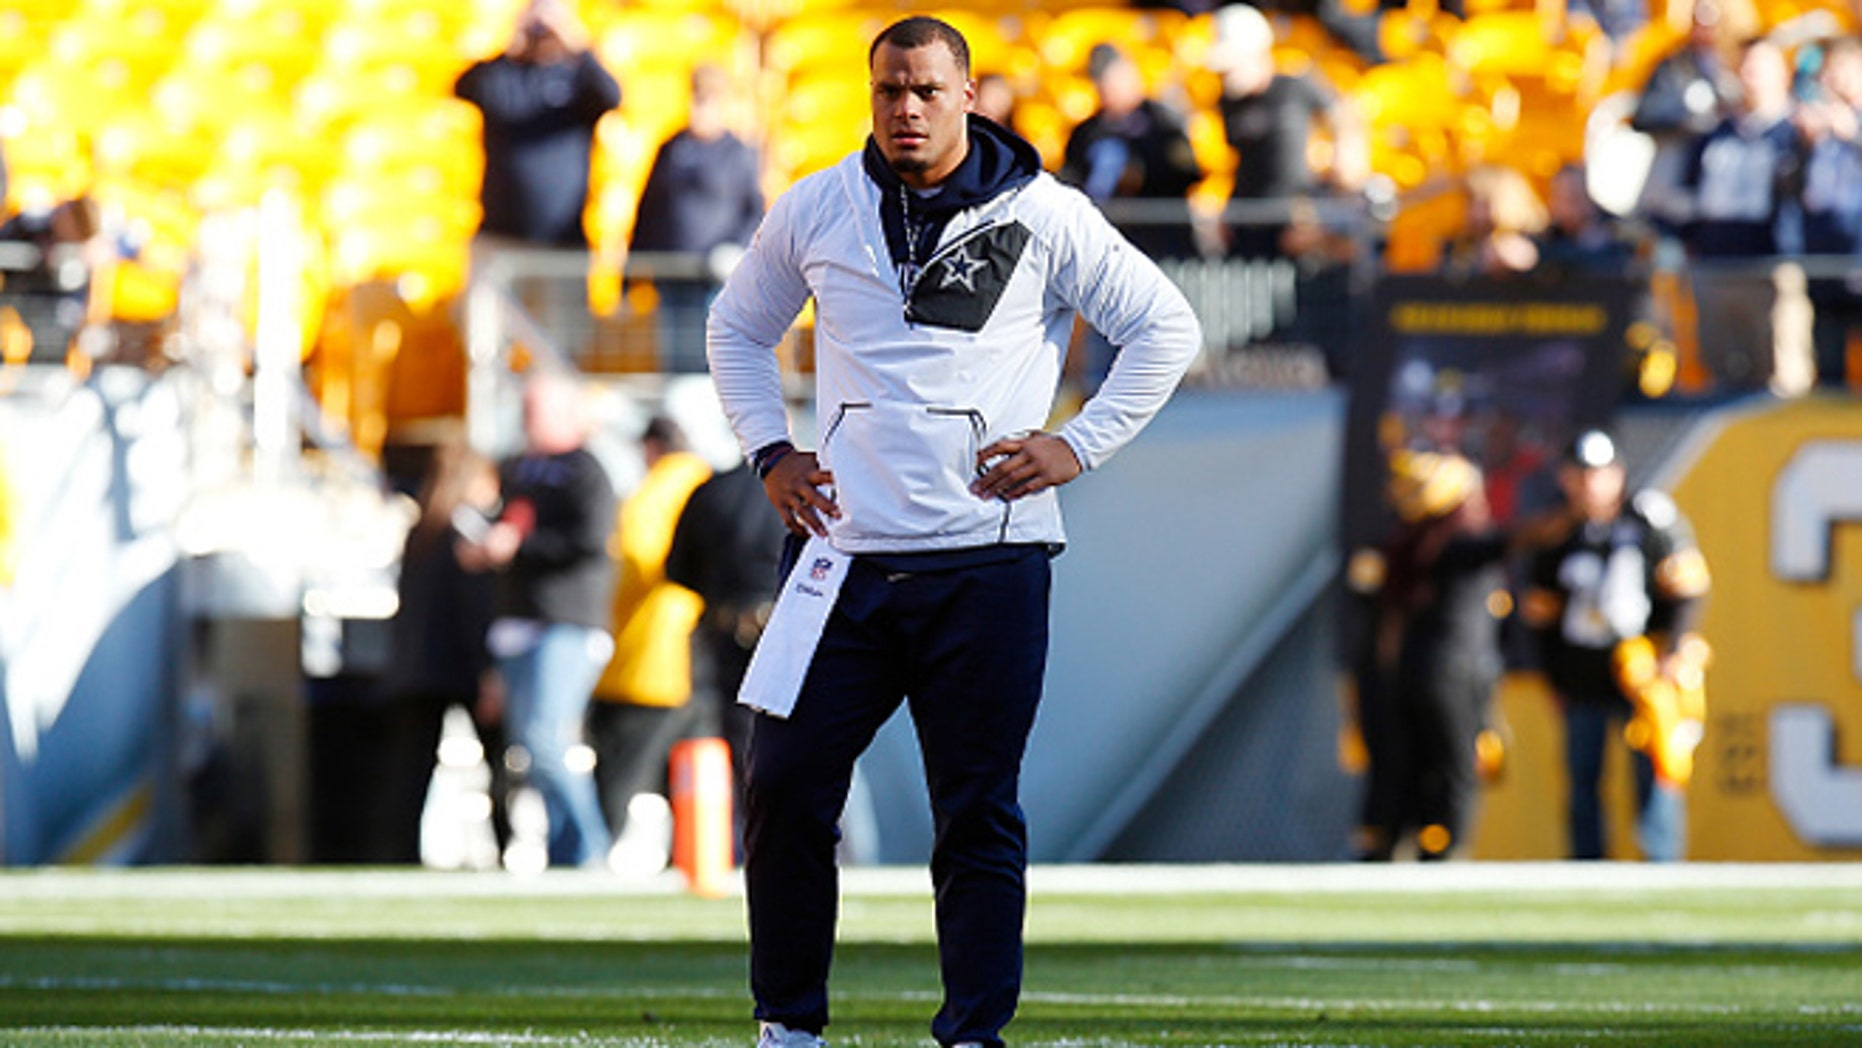 PITTSBURGH, PA - NOVEMBER 13:  Dak Prescott #4 of the Dallas Cowboys warms up before the game against the Pittsburgh Steelers at Heinz Field on November 13, 2016 in Pittsburgh, Pennsylvania. (Photo by Justin K. Aller/Getty Images)